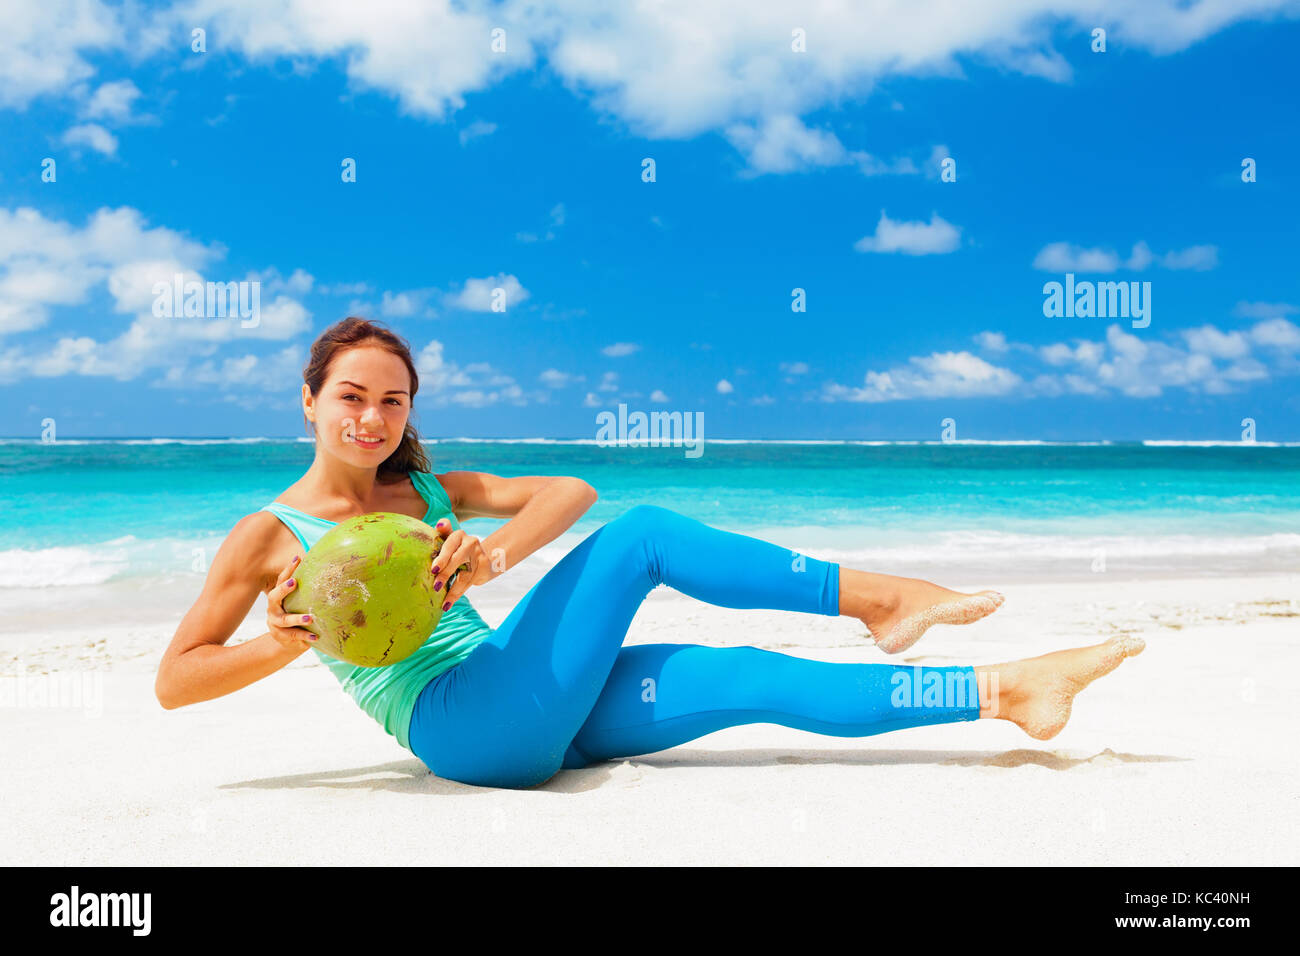 Young woman fitness abdominal exercise on beach to keep fit and health. Doing crunches core, leg raising and twisting - Stock Image